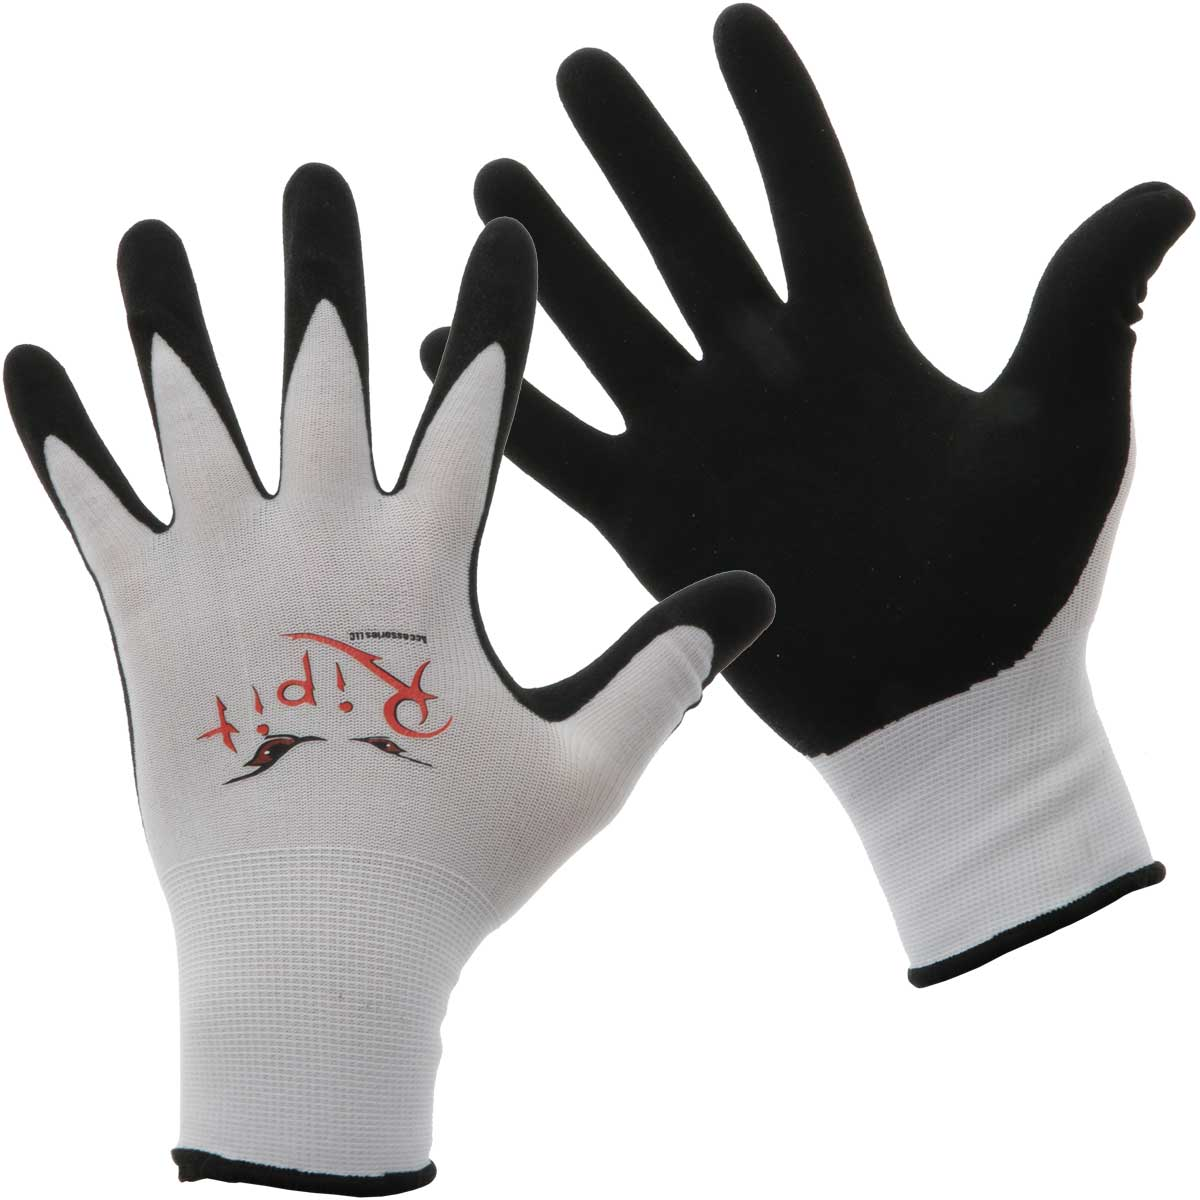 Rip-It Drywall Gloves - White